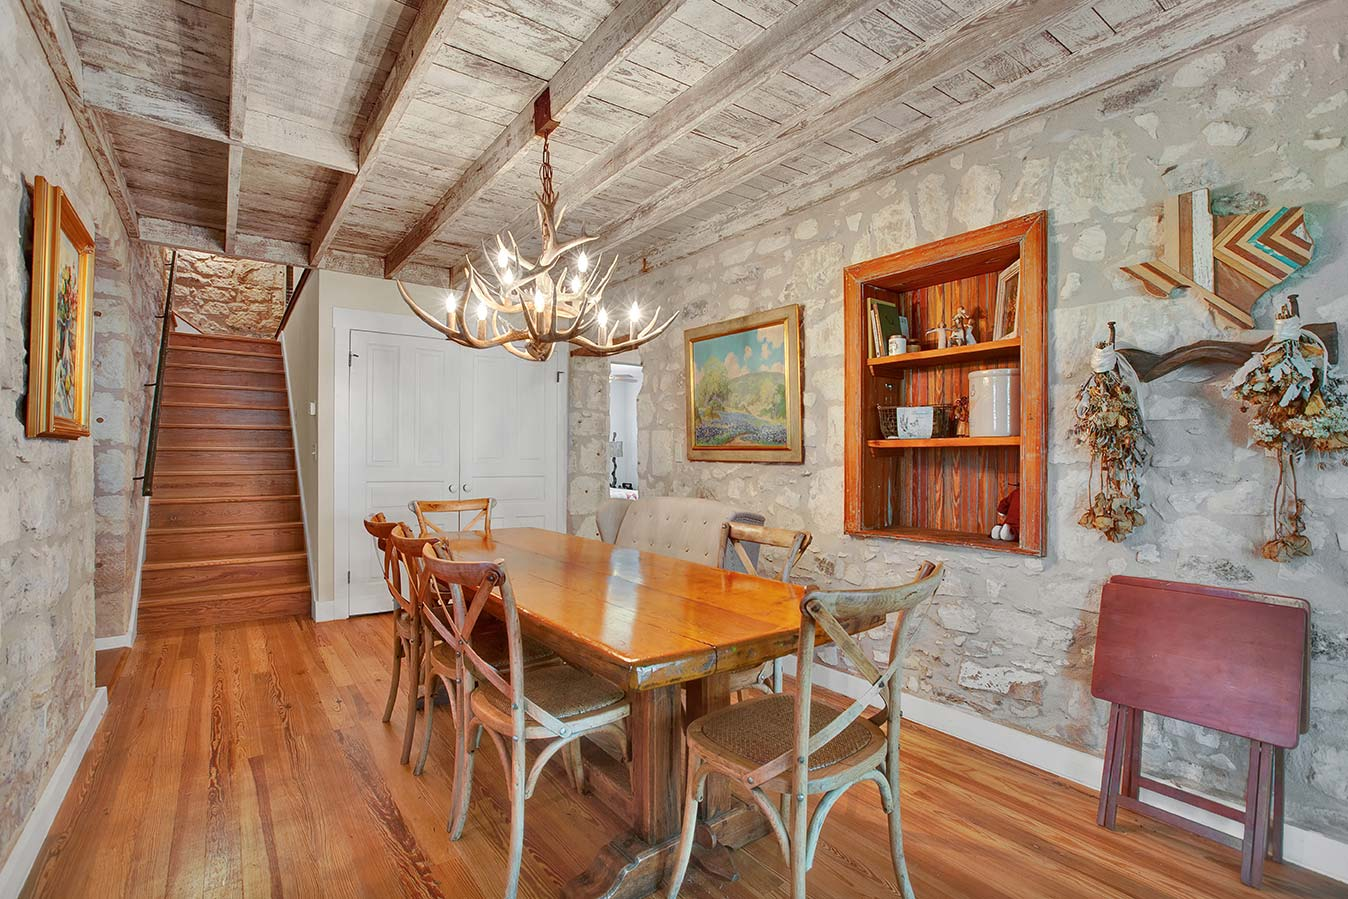 fredericksburg-realty-squaw-creek-ranch-real-estate-land-for-sale-home-house-historic-19.jpg